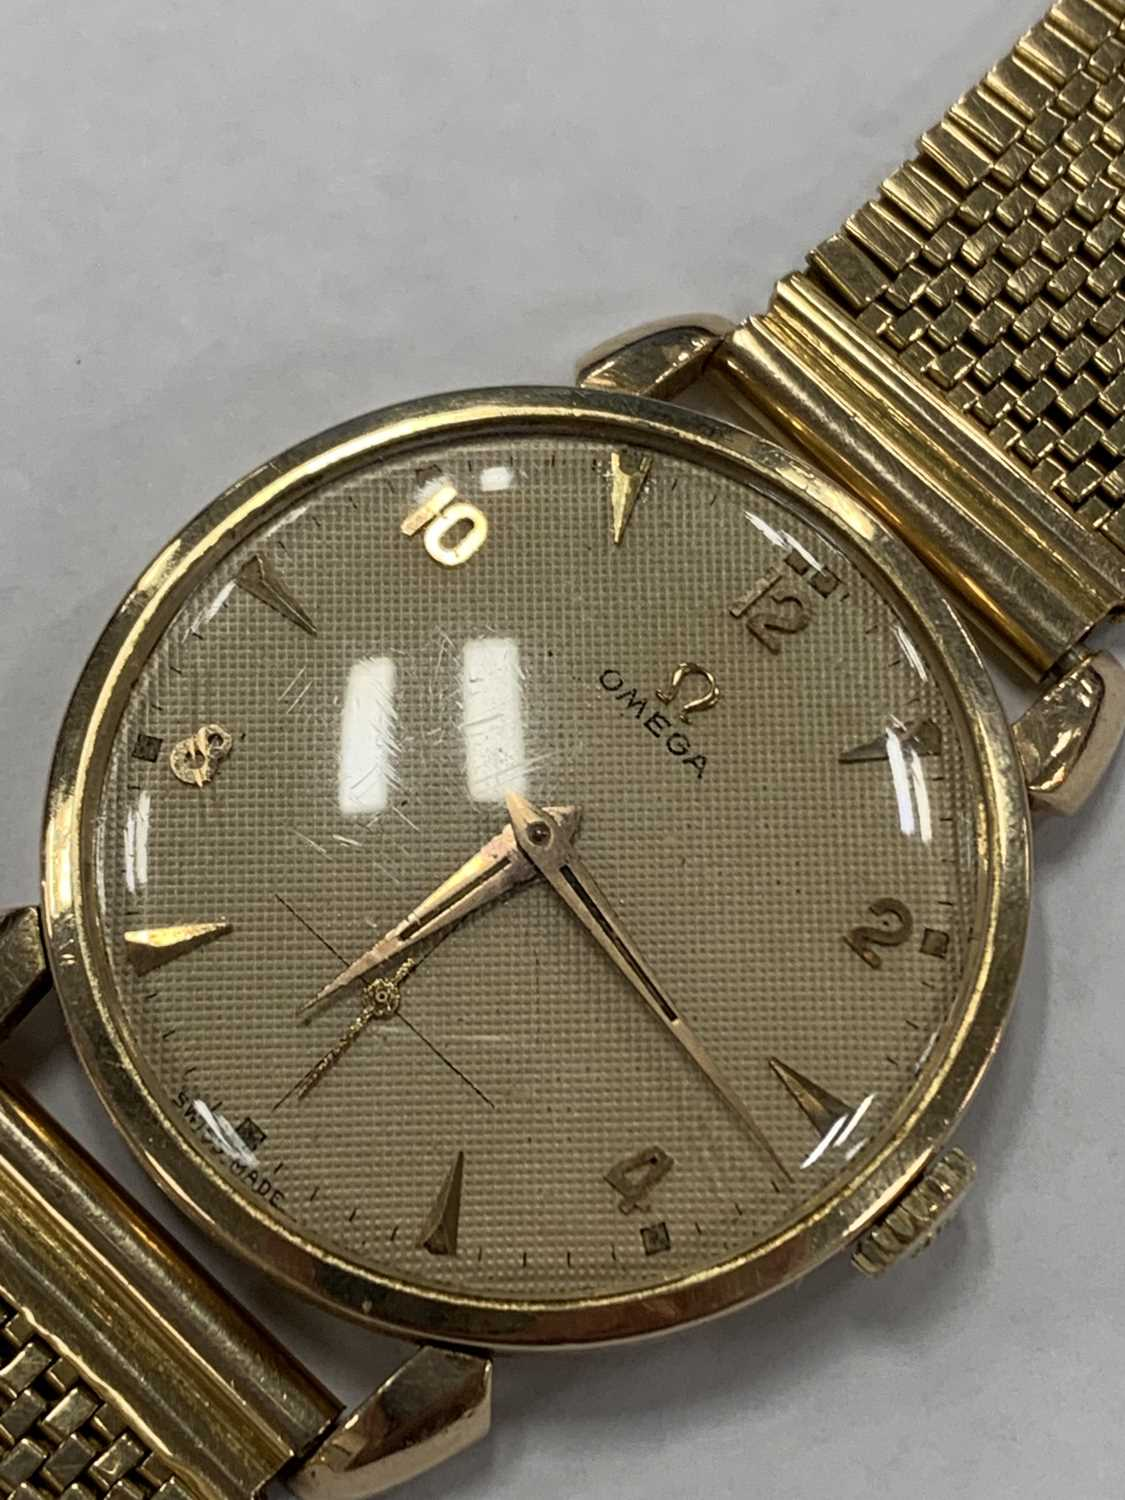 A Gentleman's gold plated Omega wristwatch with yellow metal bracelet - Image 6 of 9